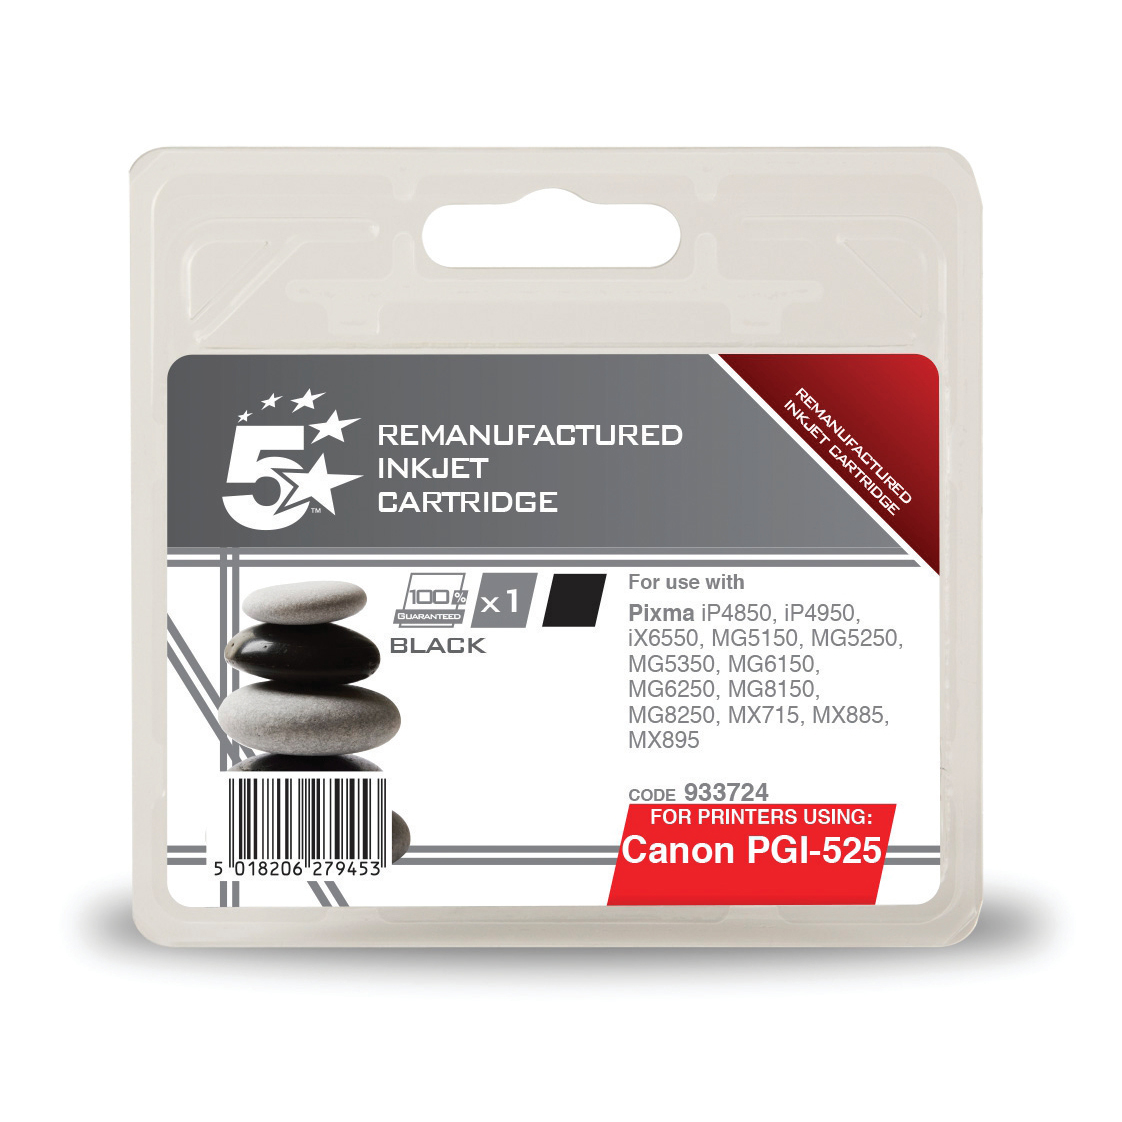 Inkjet Cartridges 5 Star Office Remanufactured Inkjet Cartridge Page Life 341pp 19ml Black Canon PGI-525PGBK Alternative